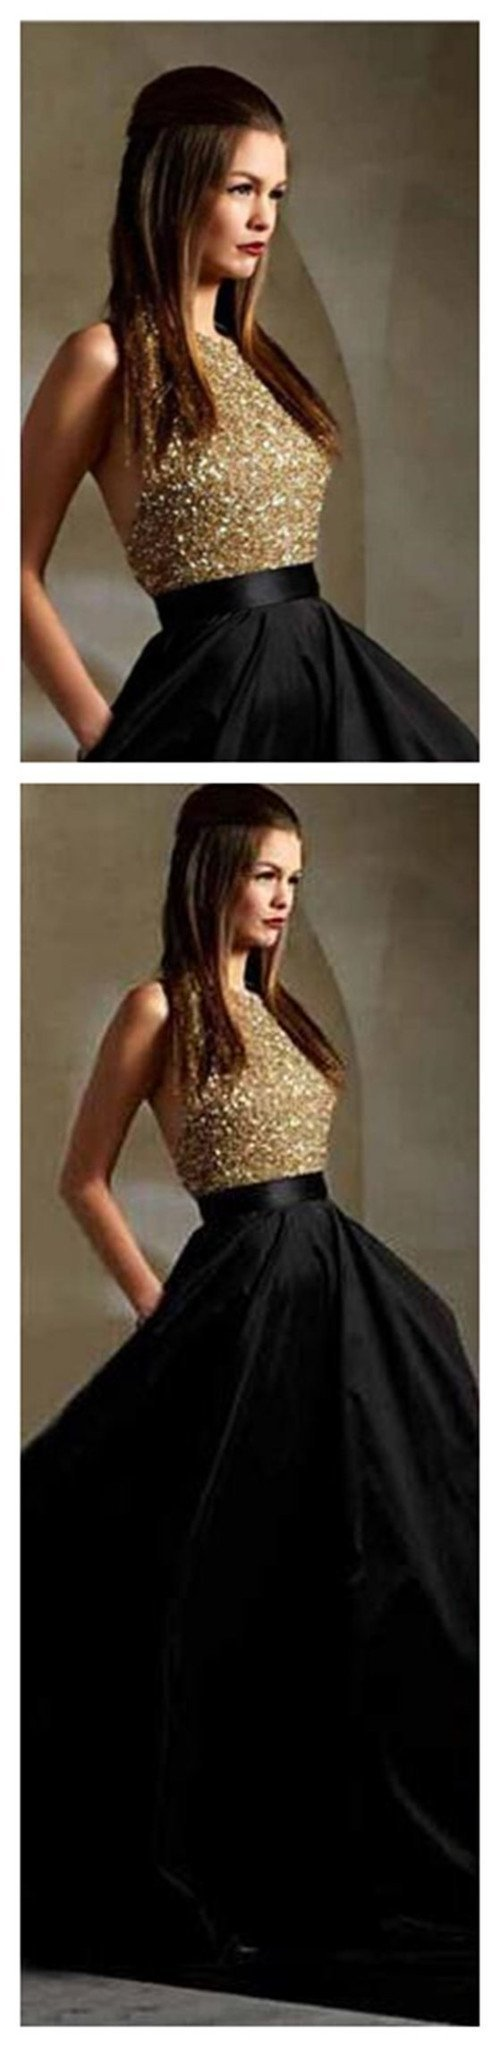 Long Prom Dresses Black Prom Dresses Party Prom Dresses Ball Gown Loverbridal